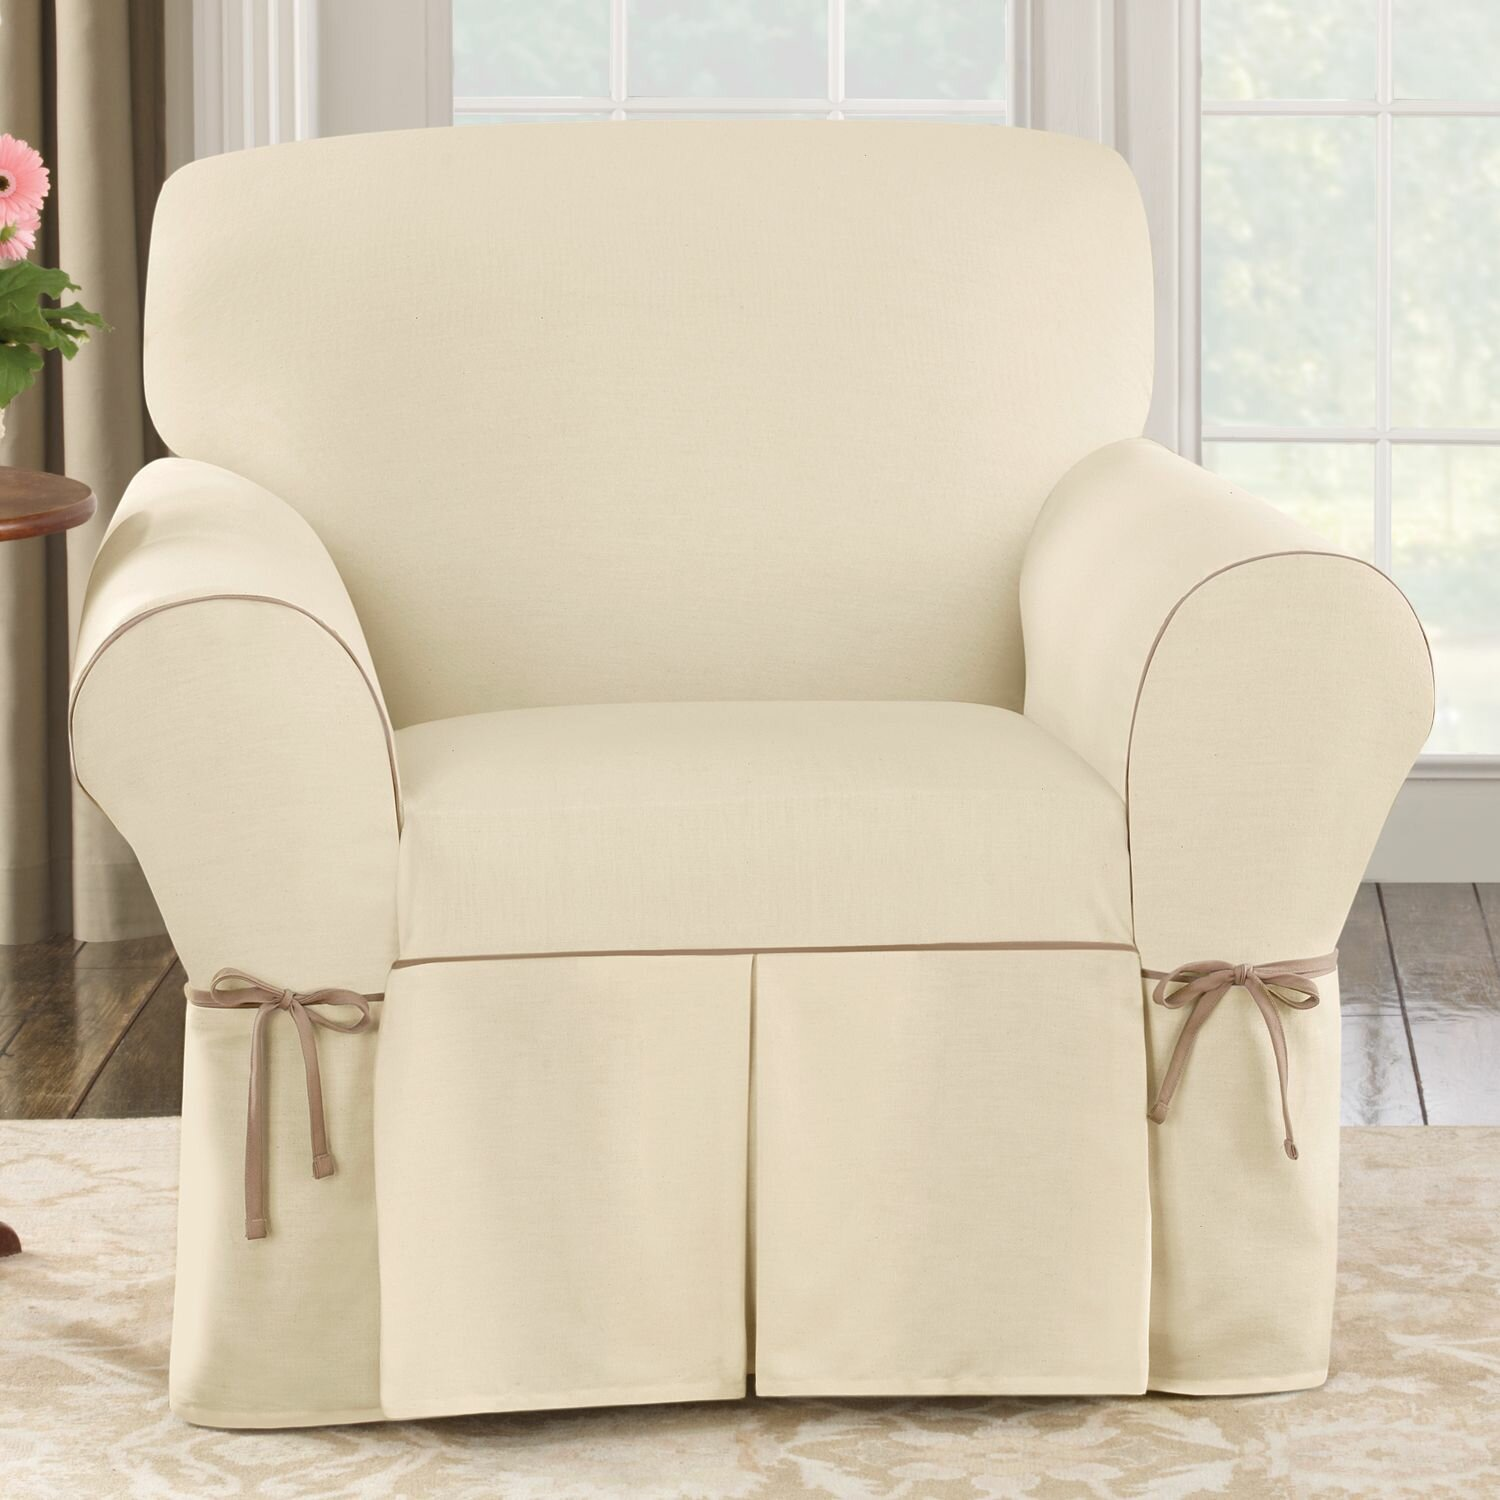 Sure Fit Cotton Duck Club Chair Slipcover & Reviews | Wayfair